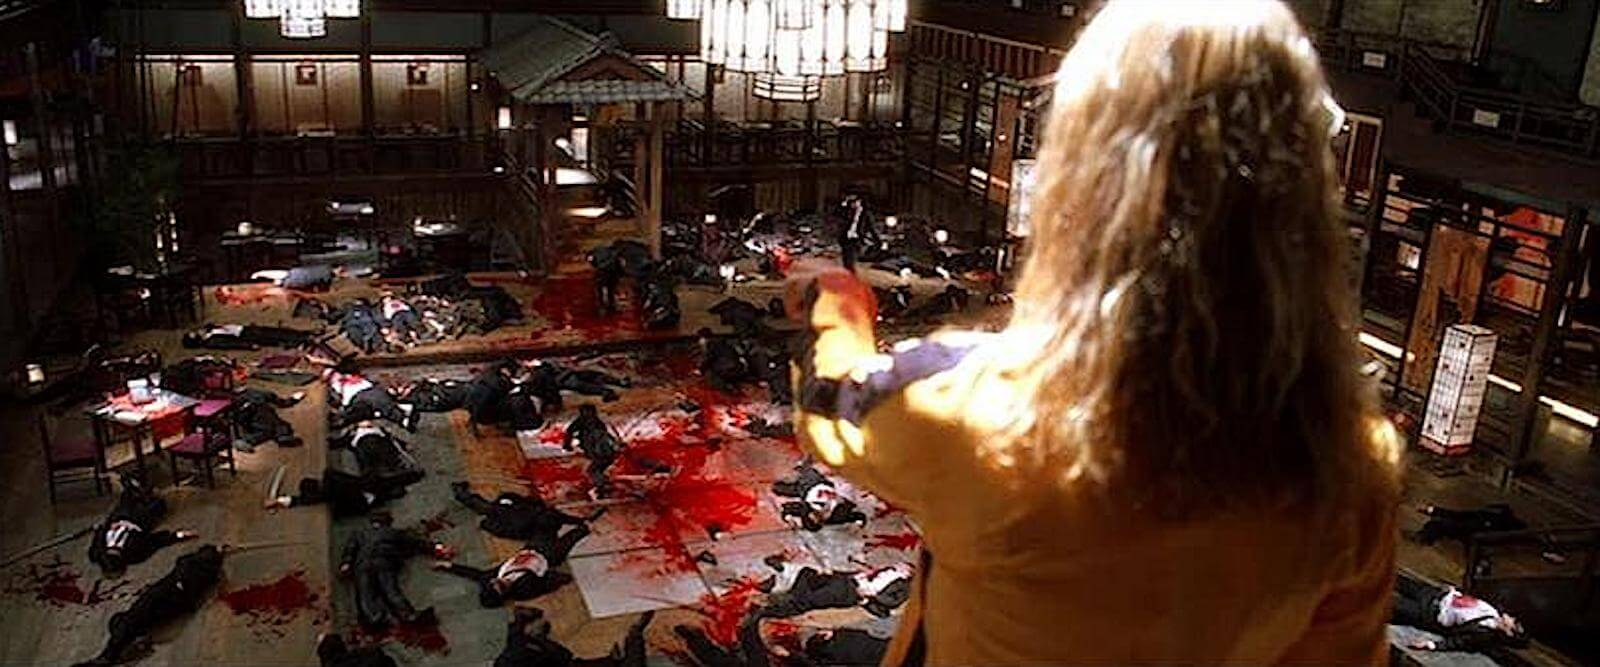 DIY Fake Blood Recipe - Kill Bill - Bloodbath